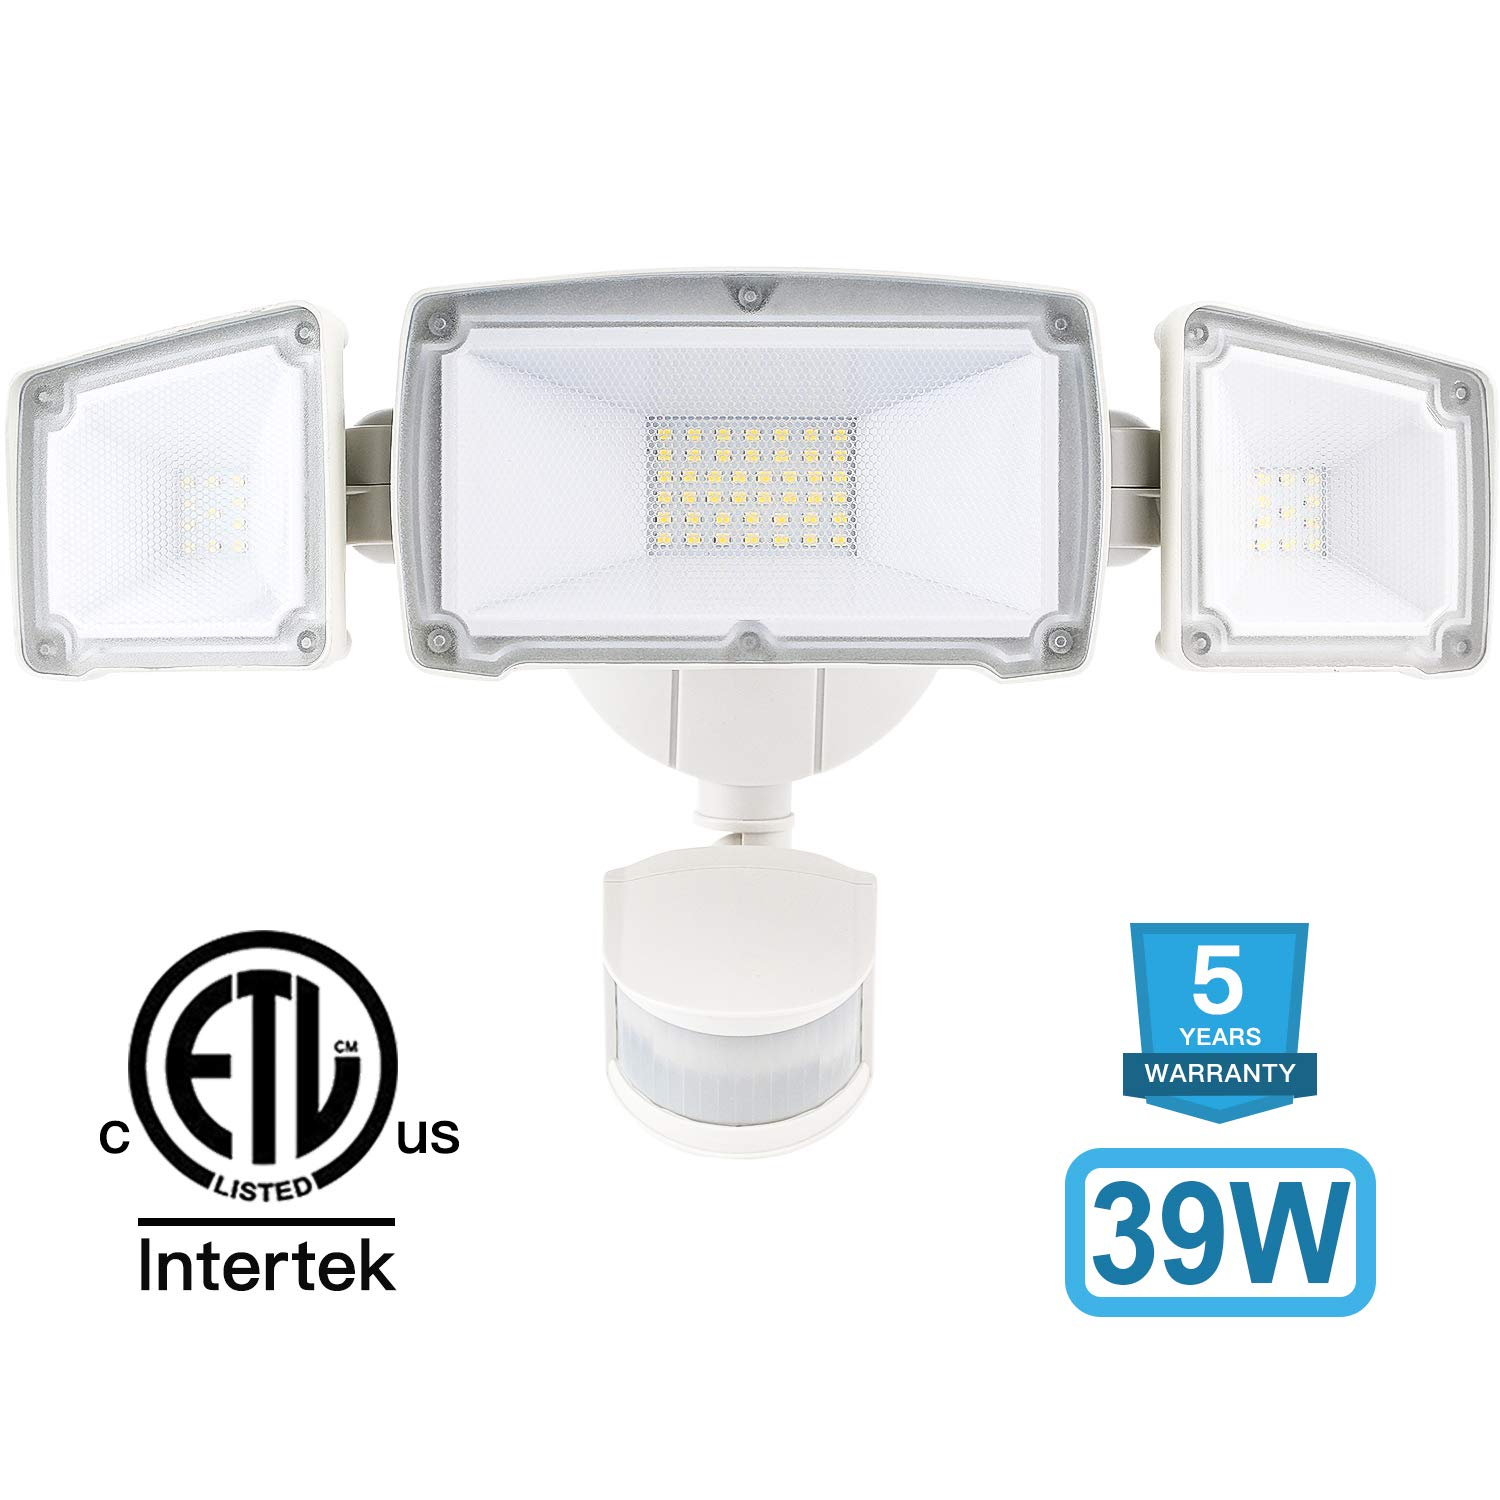 Amico 39W 3 Head LED Security-Lights Motion Outdoor